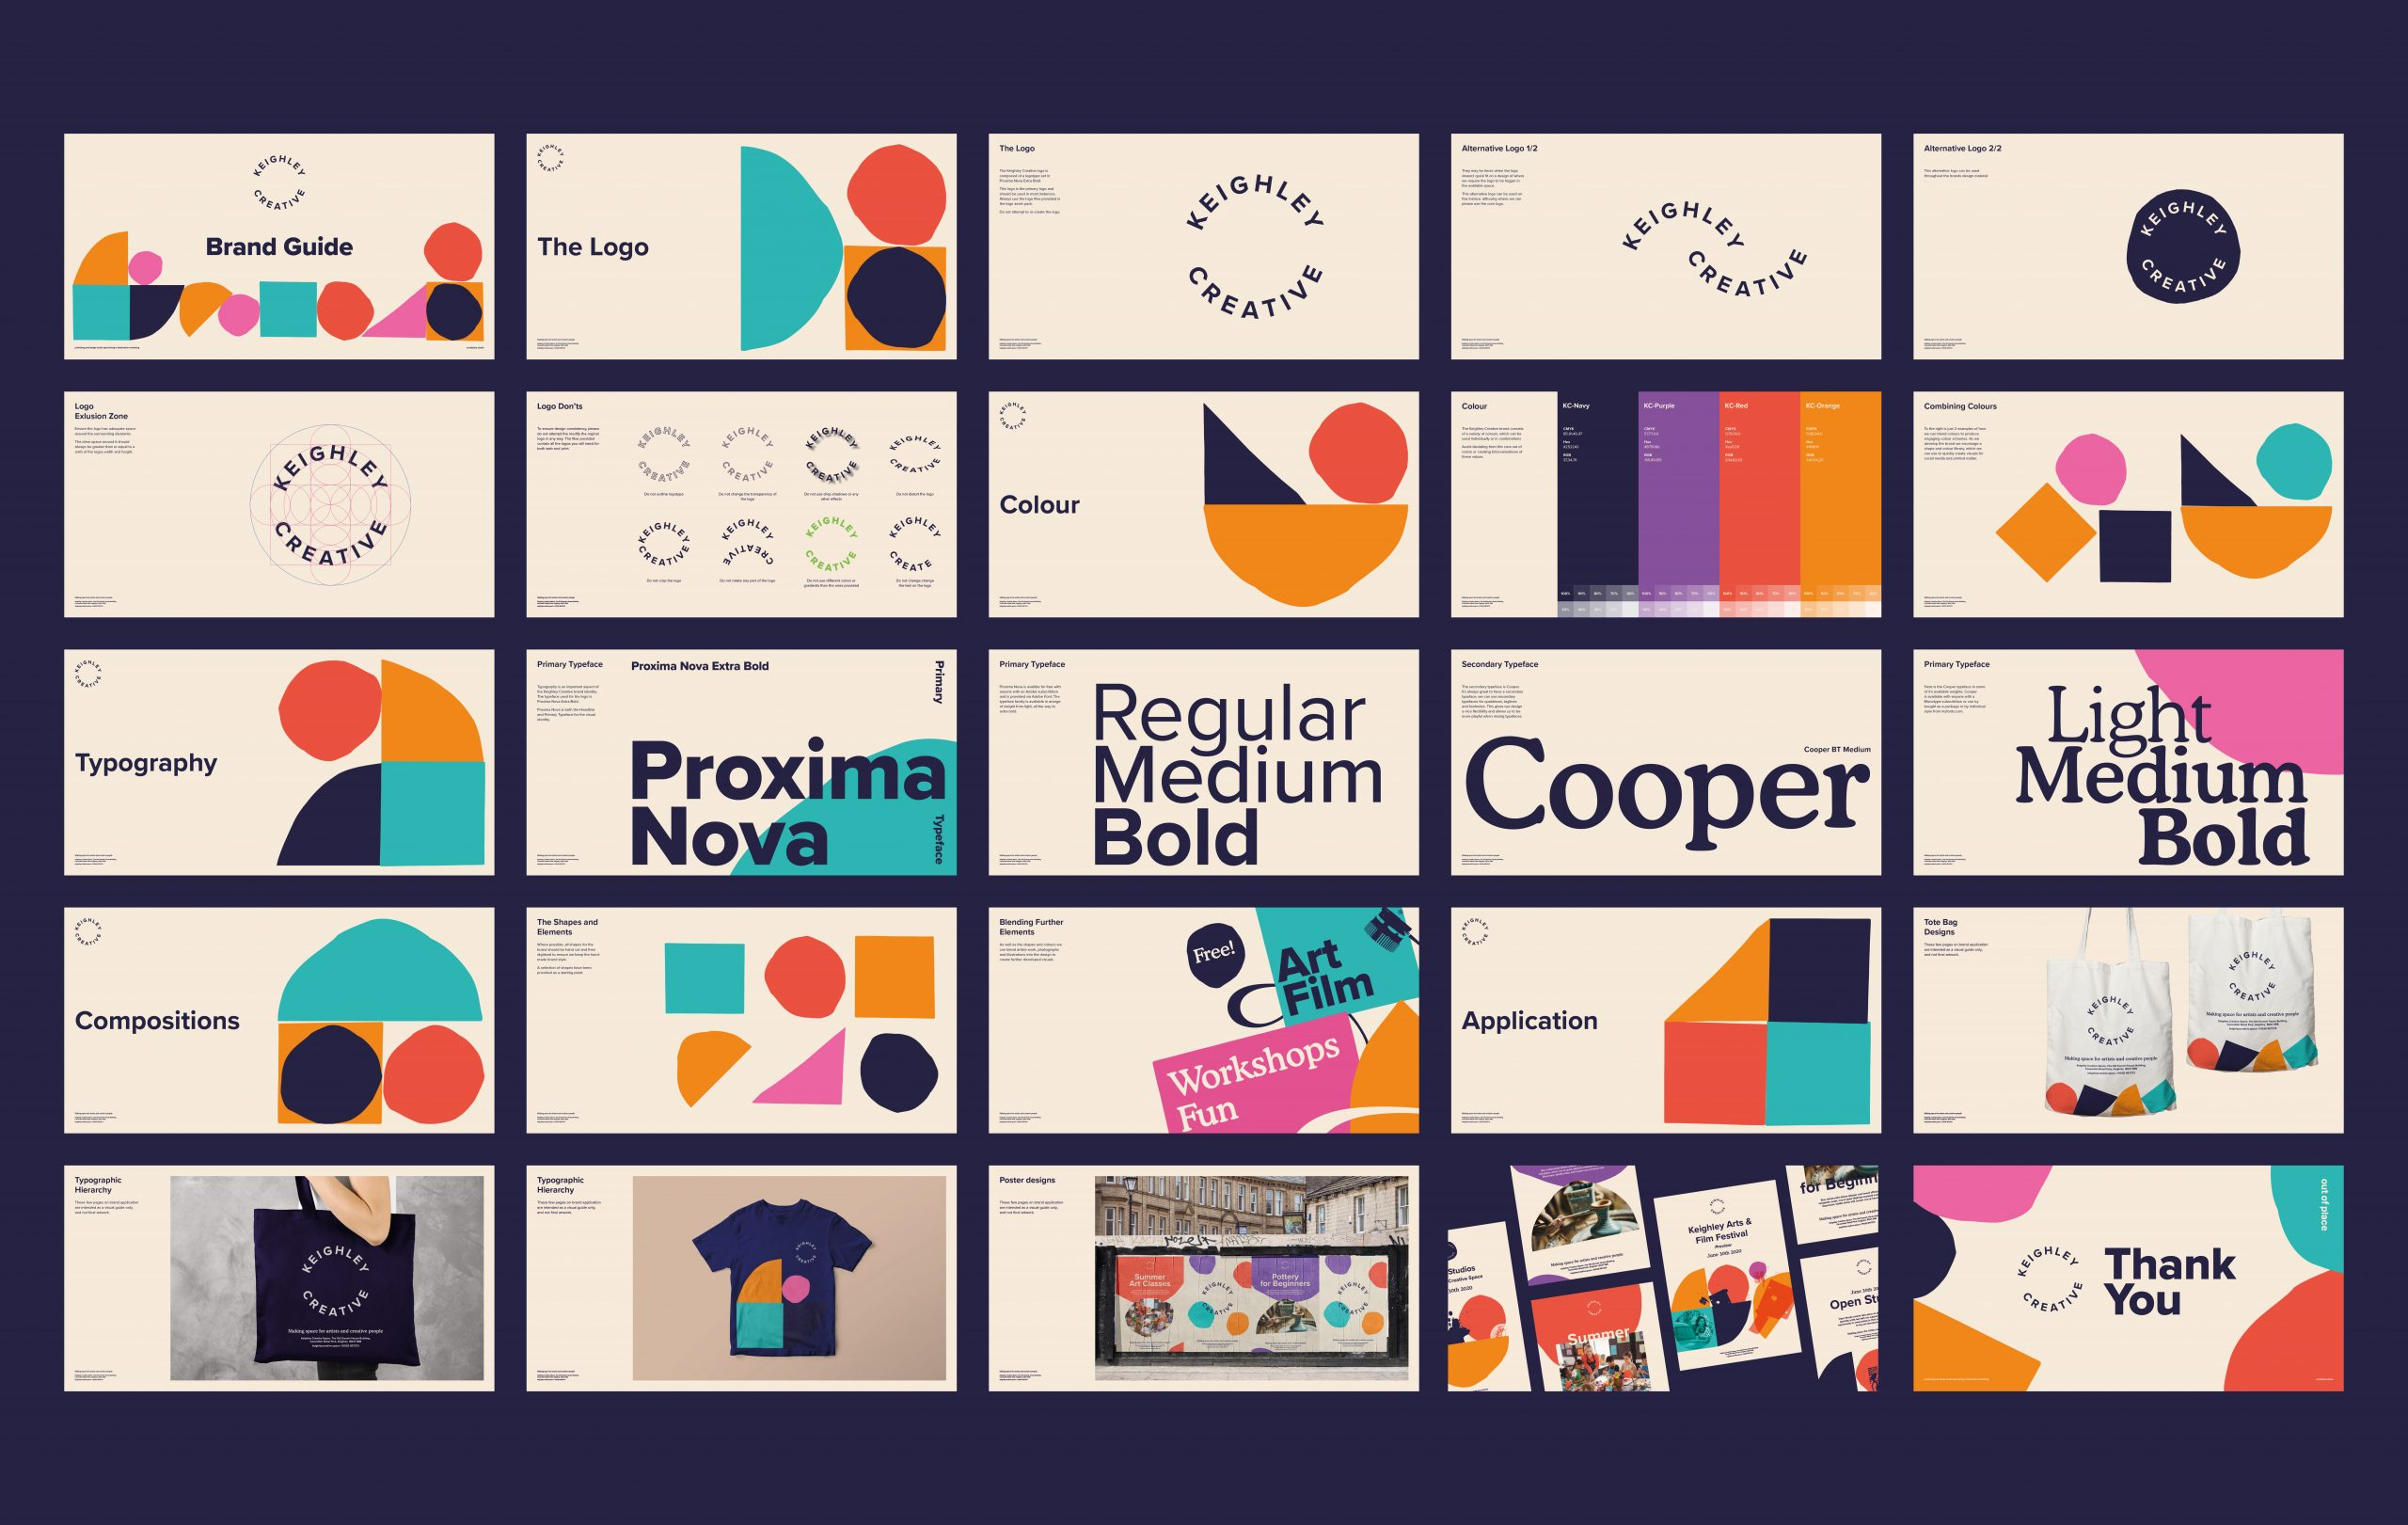 Keighley Creative - Brand Toolkit Design